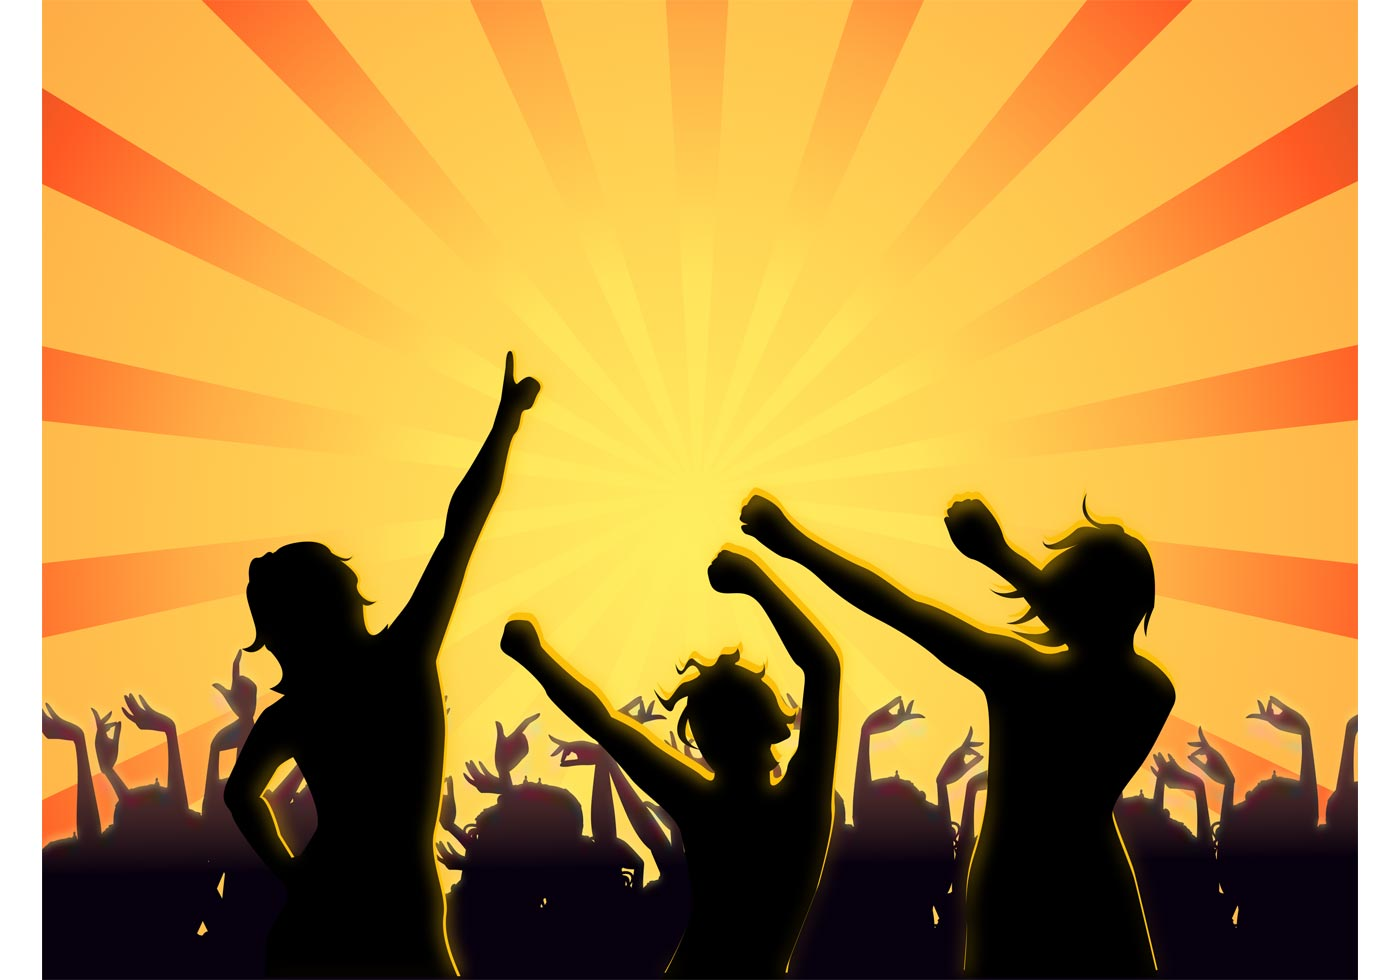 party-people-silhouettes-vector.jpg